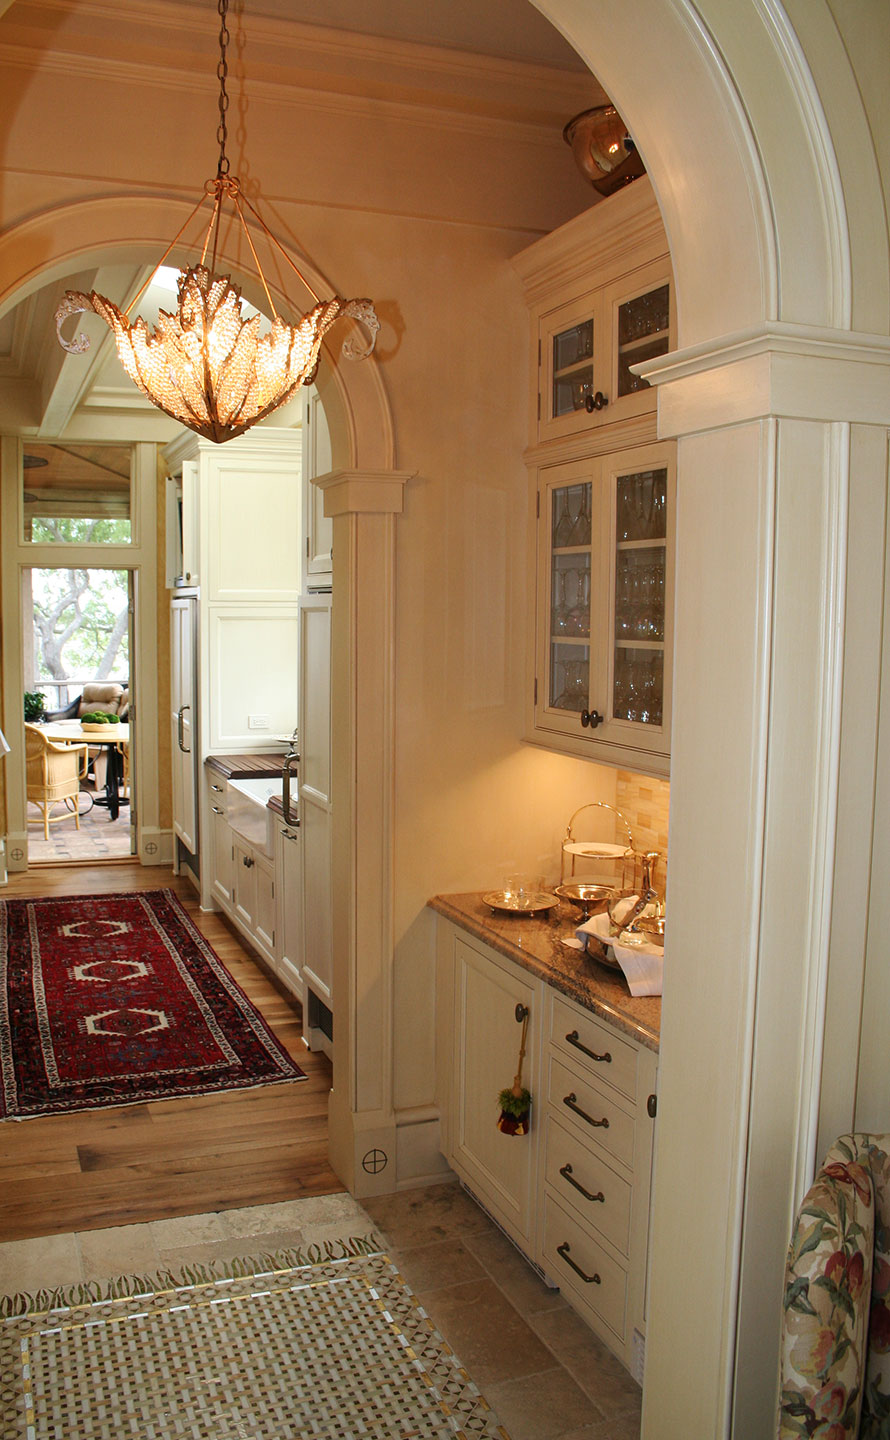 Archway & Cabinets